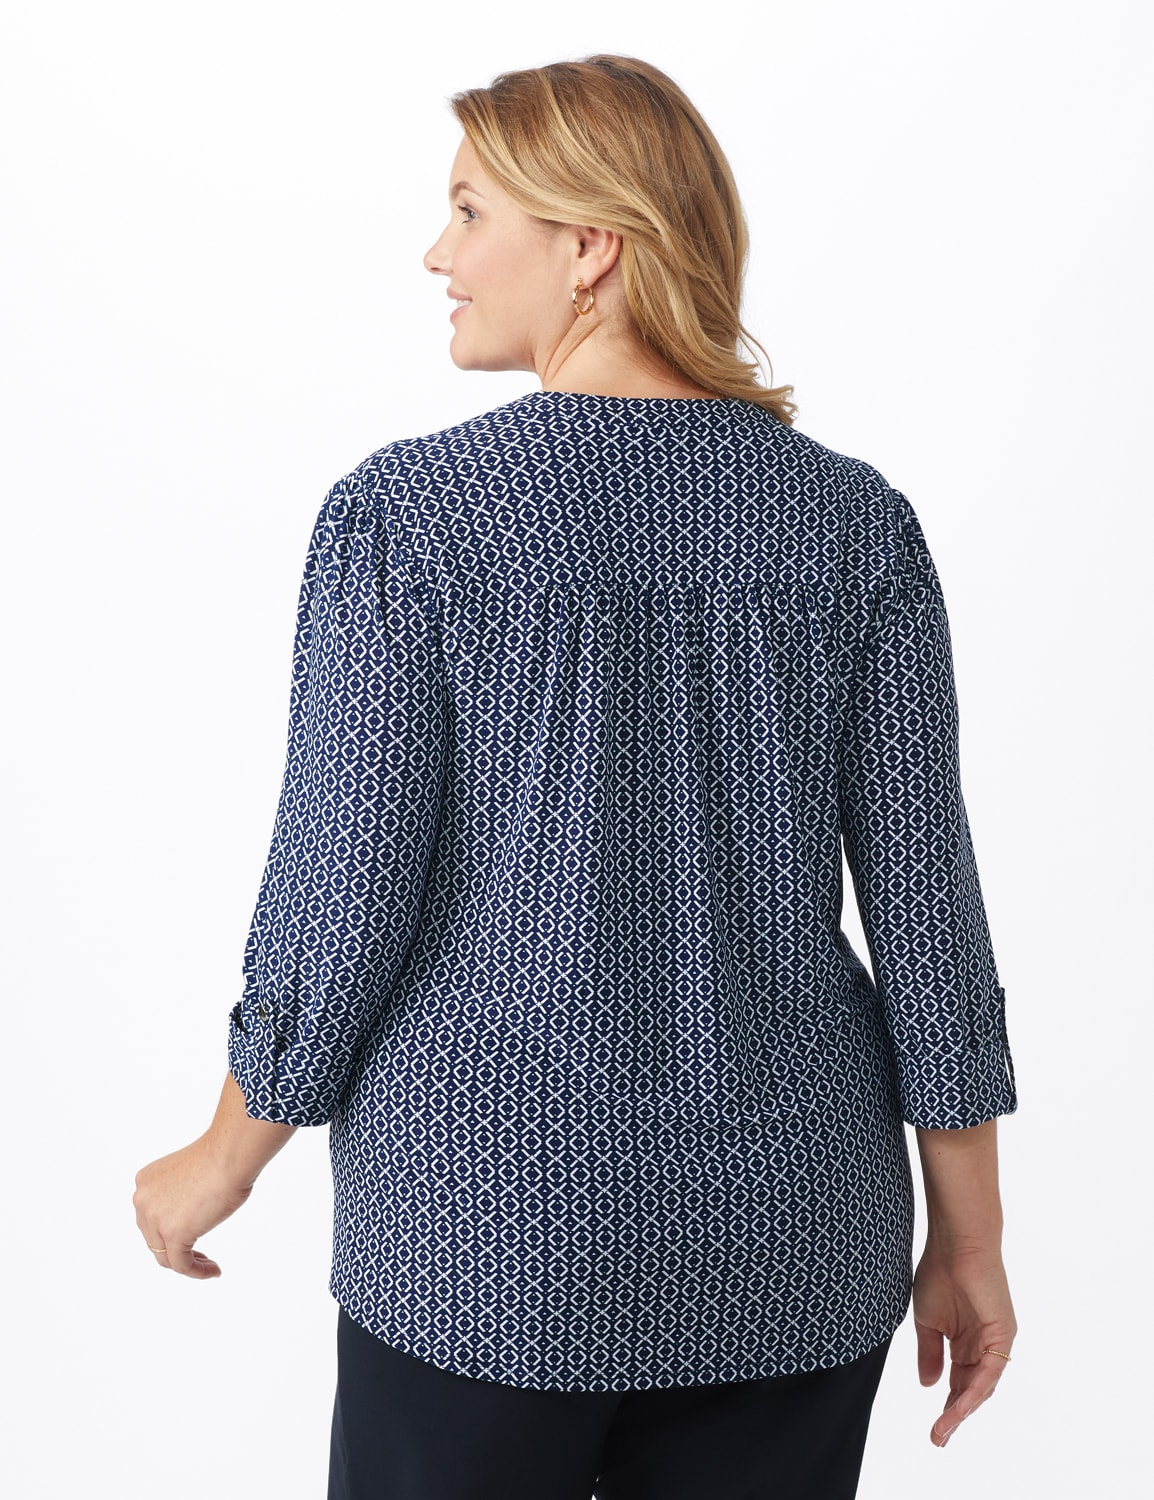 Geo Pintuck Knit Popover - Navy - Back